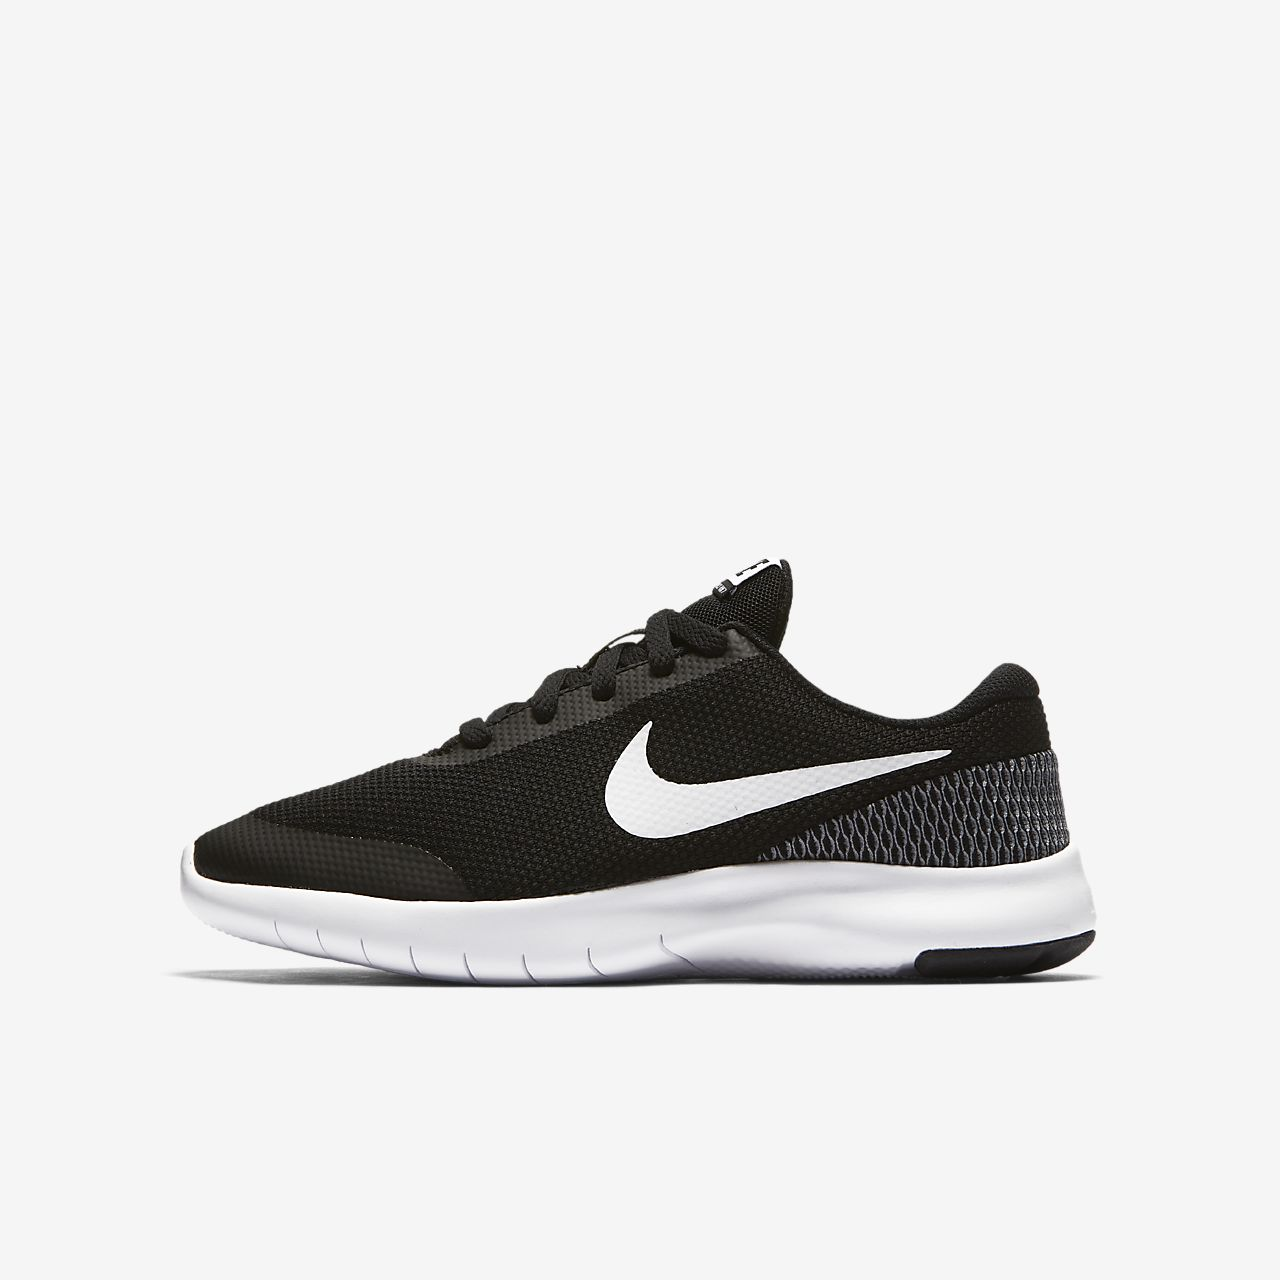 online retailer 3c306 e9582 ... switzerland nike flex experience run 7 older kids running shoe 3f778  c7fcd